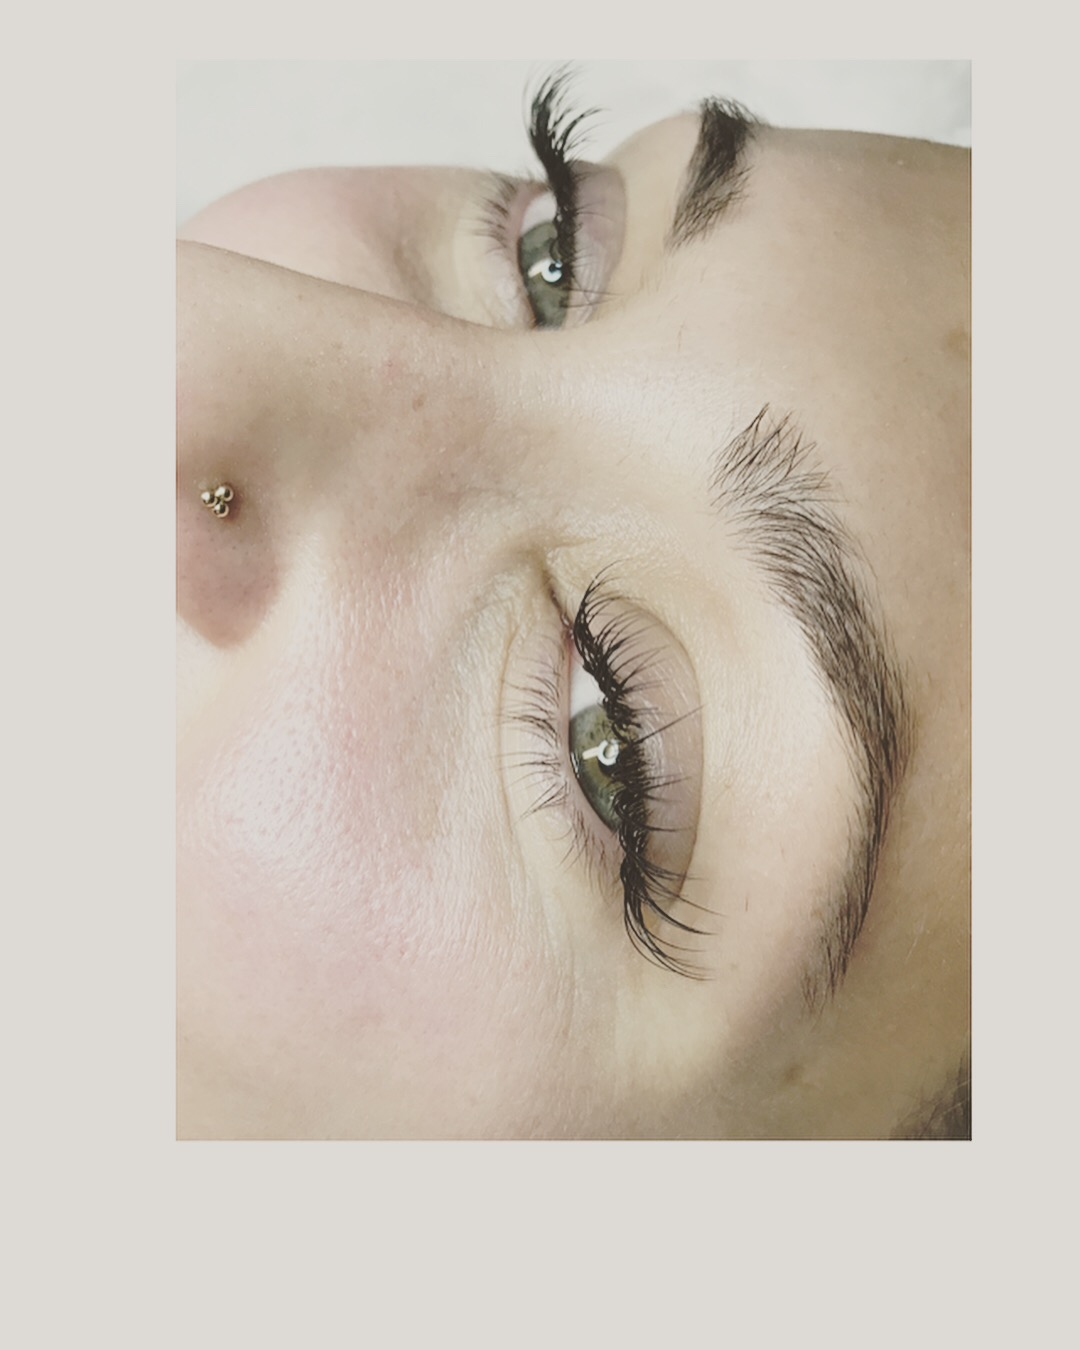 Classic lash application with cat-eye flare by Krystal